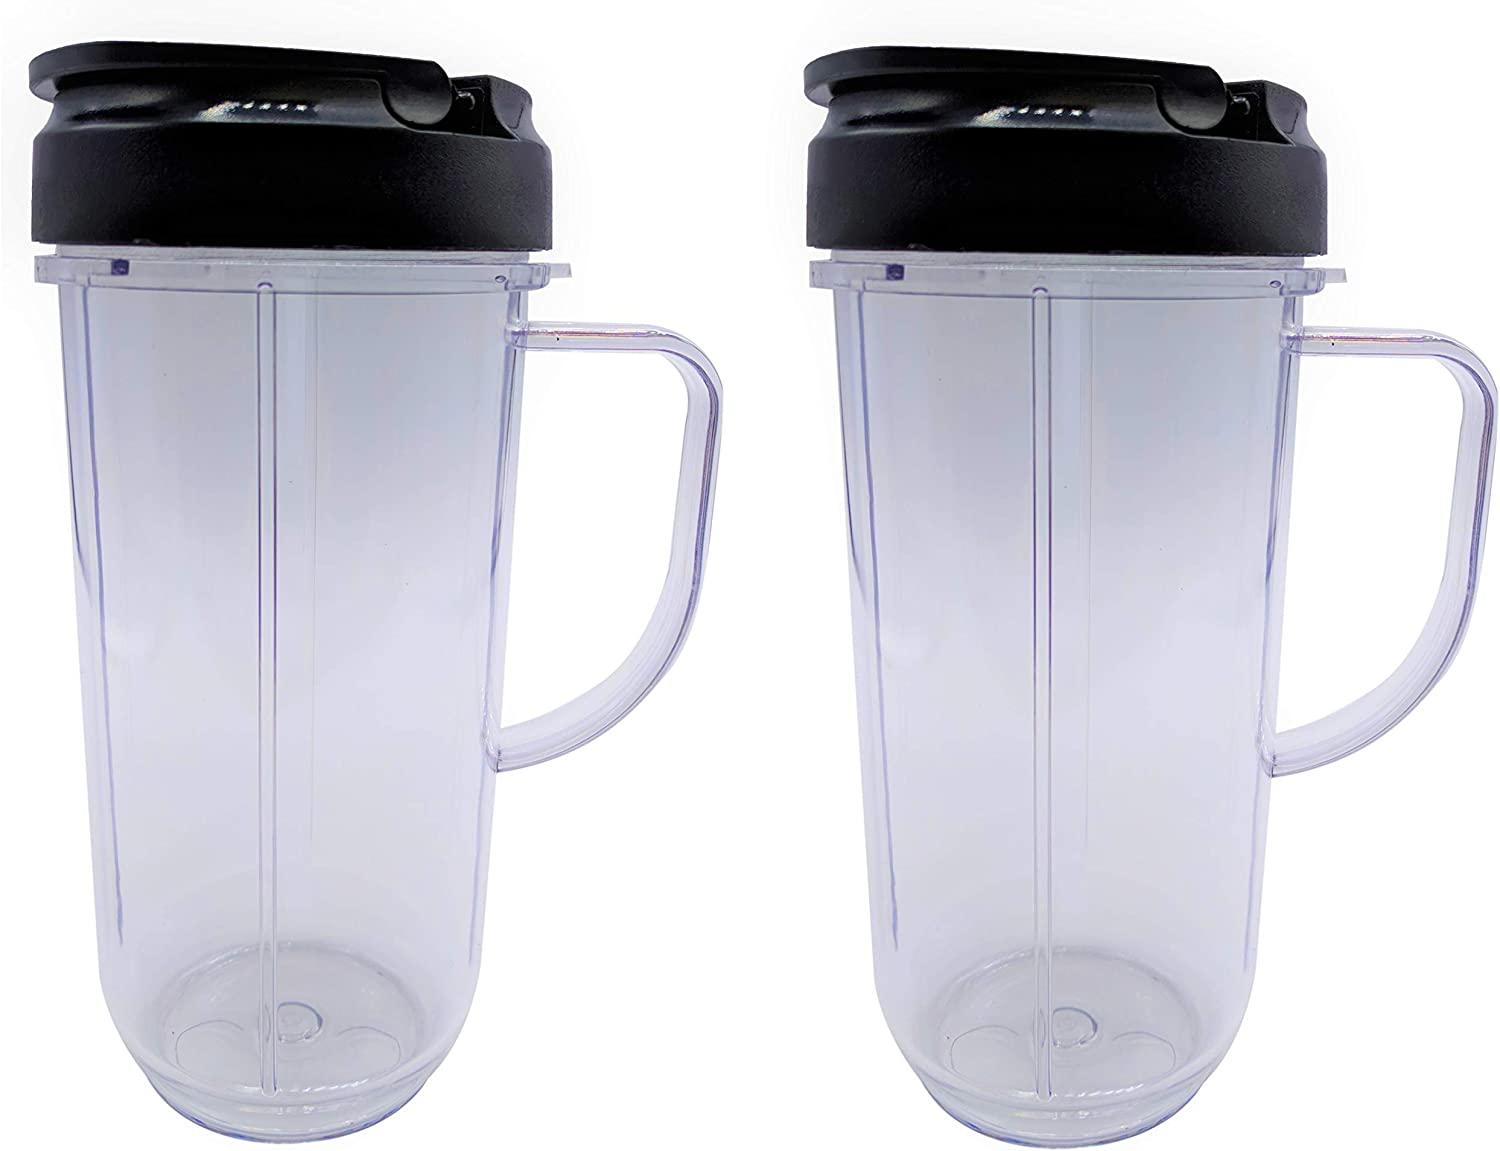 Blendin Replacement Cup With Flip Top to Go Lid, Compatible with Magic Bullet MB1001 Blender (2, 22oz Mug)